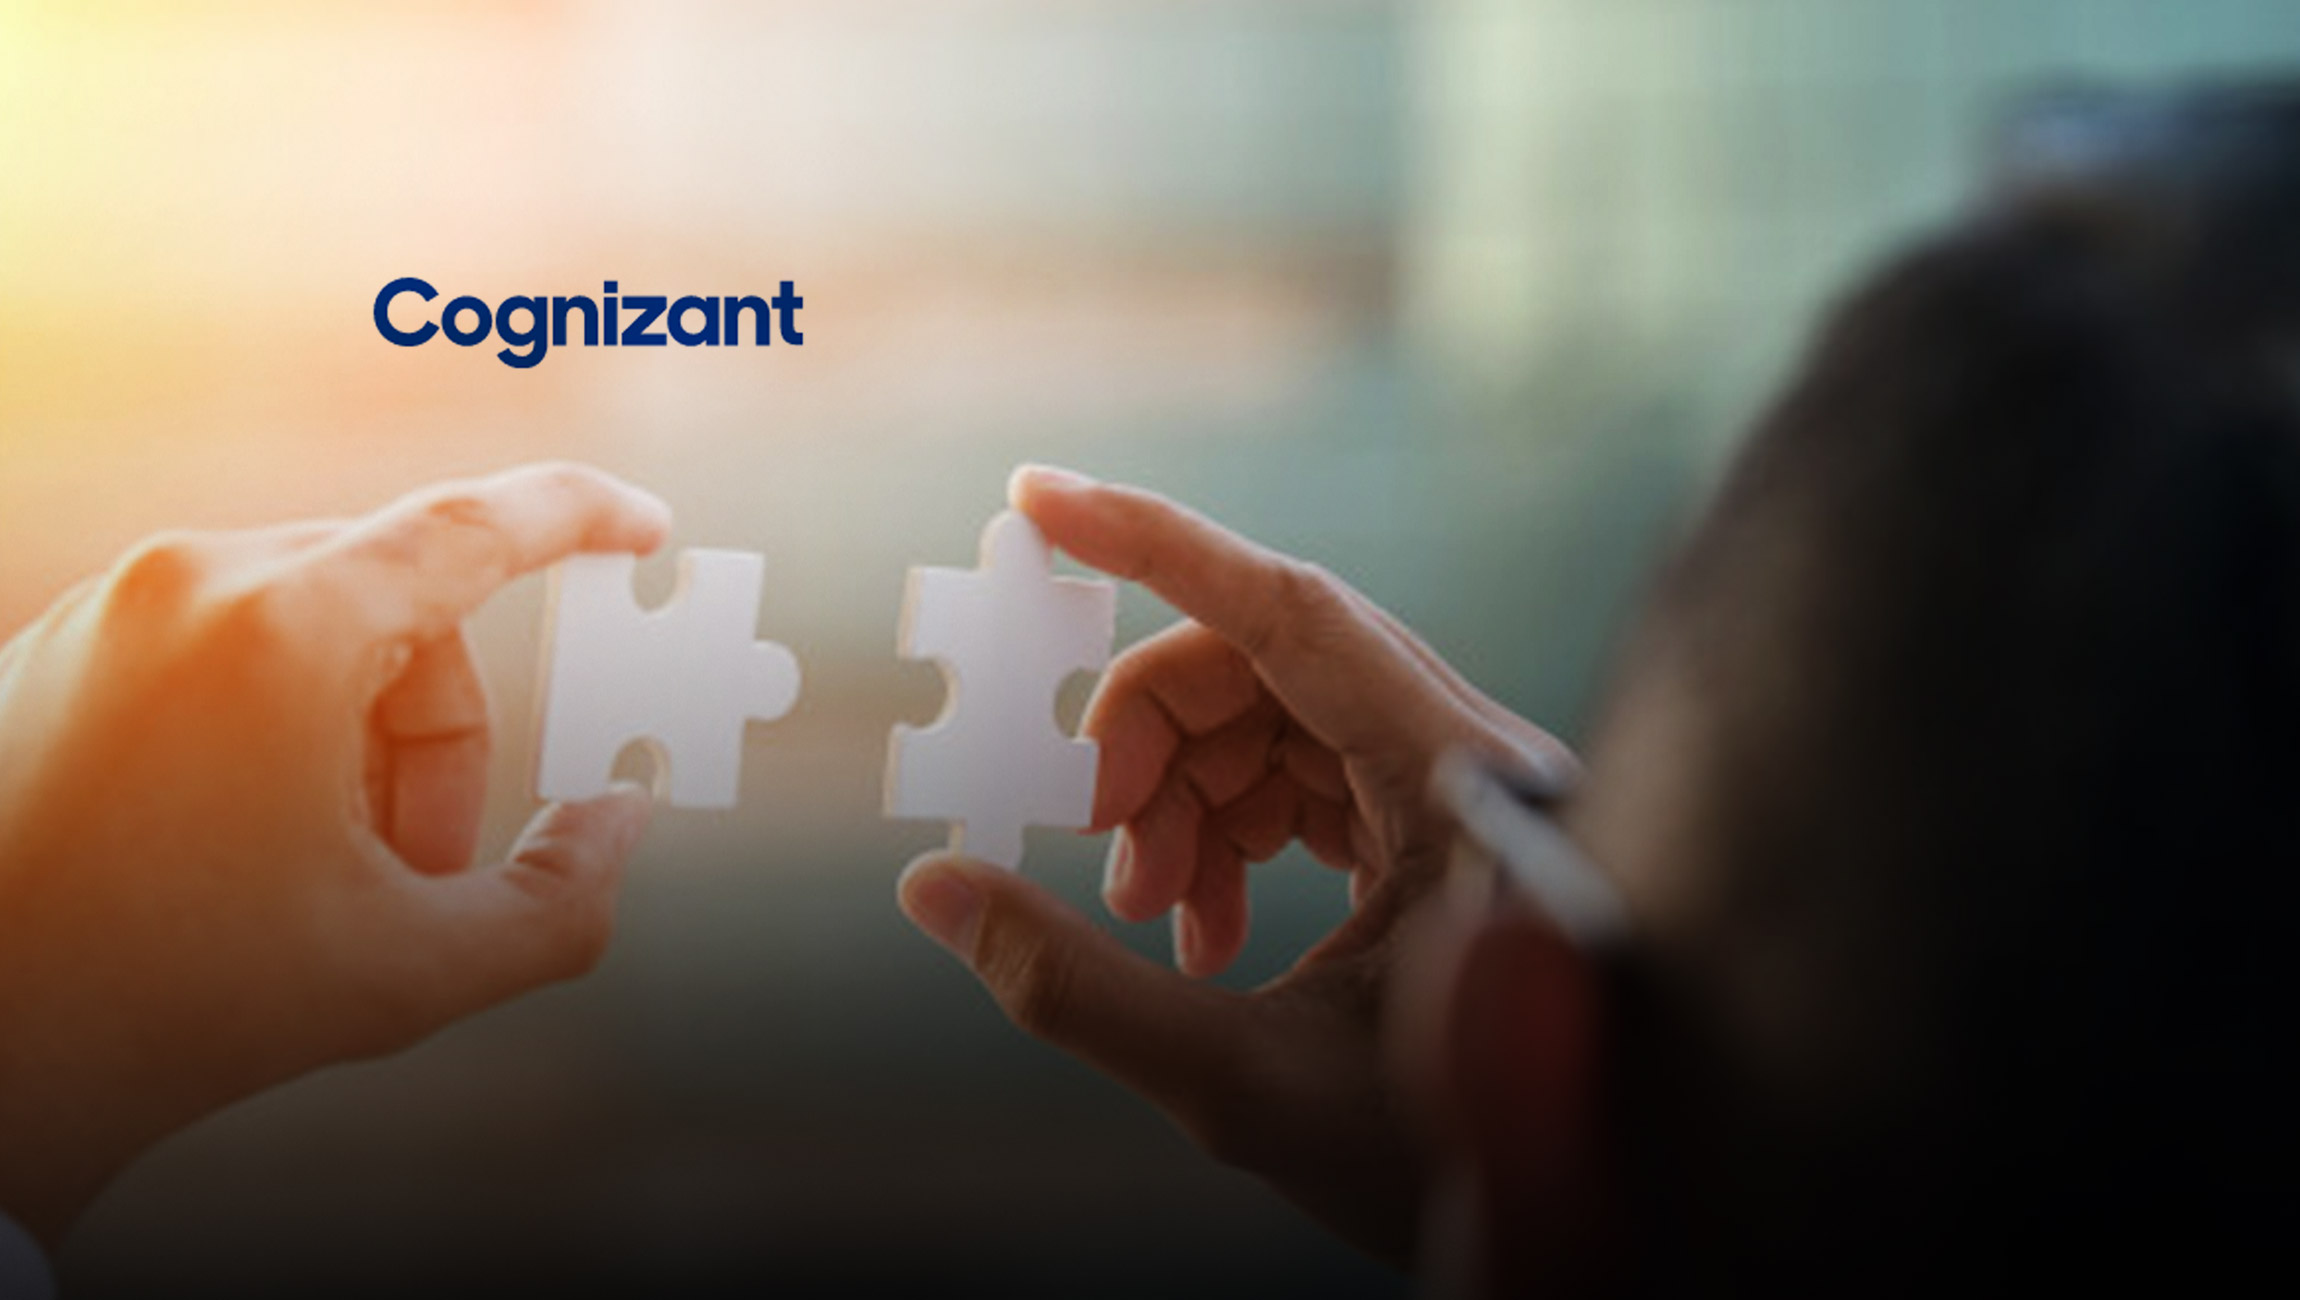 Cognizant Completes Acquisition of Tin Roof Software, Expanding Digital Engineering Services